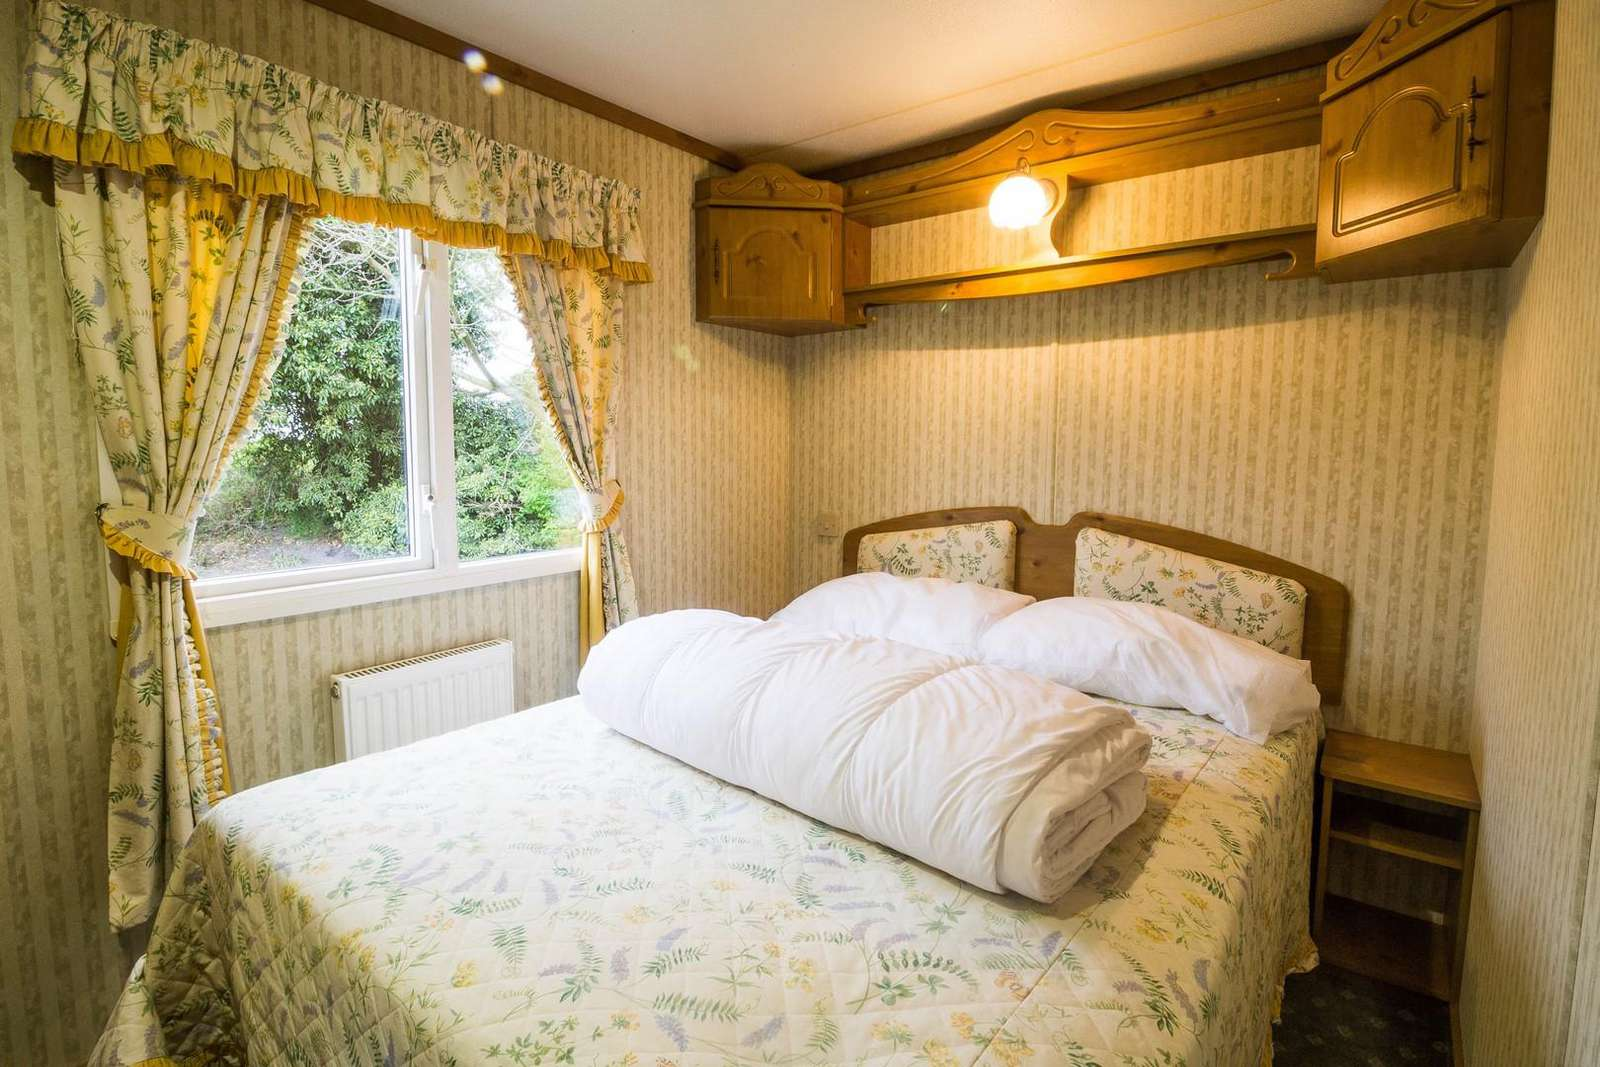 Spacious double bedroom in this 3 bed roomed caravan for hire.